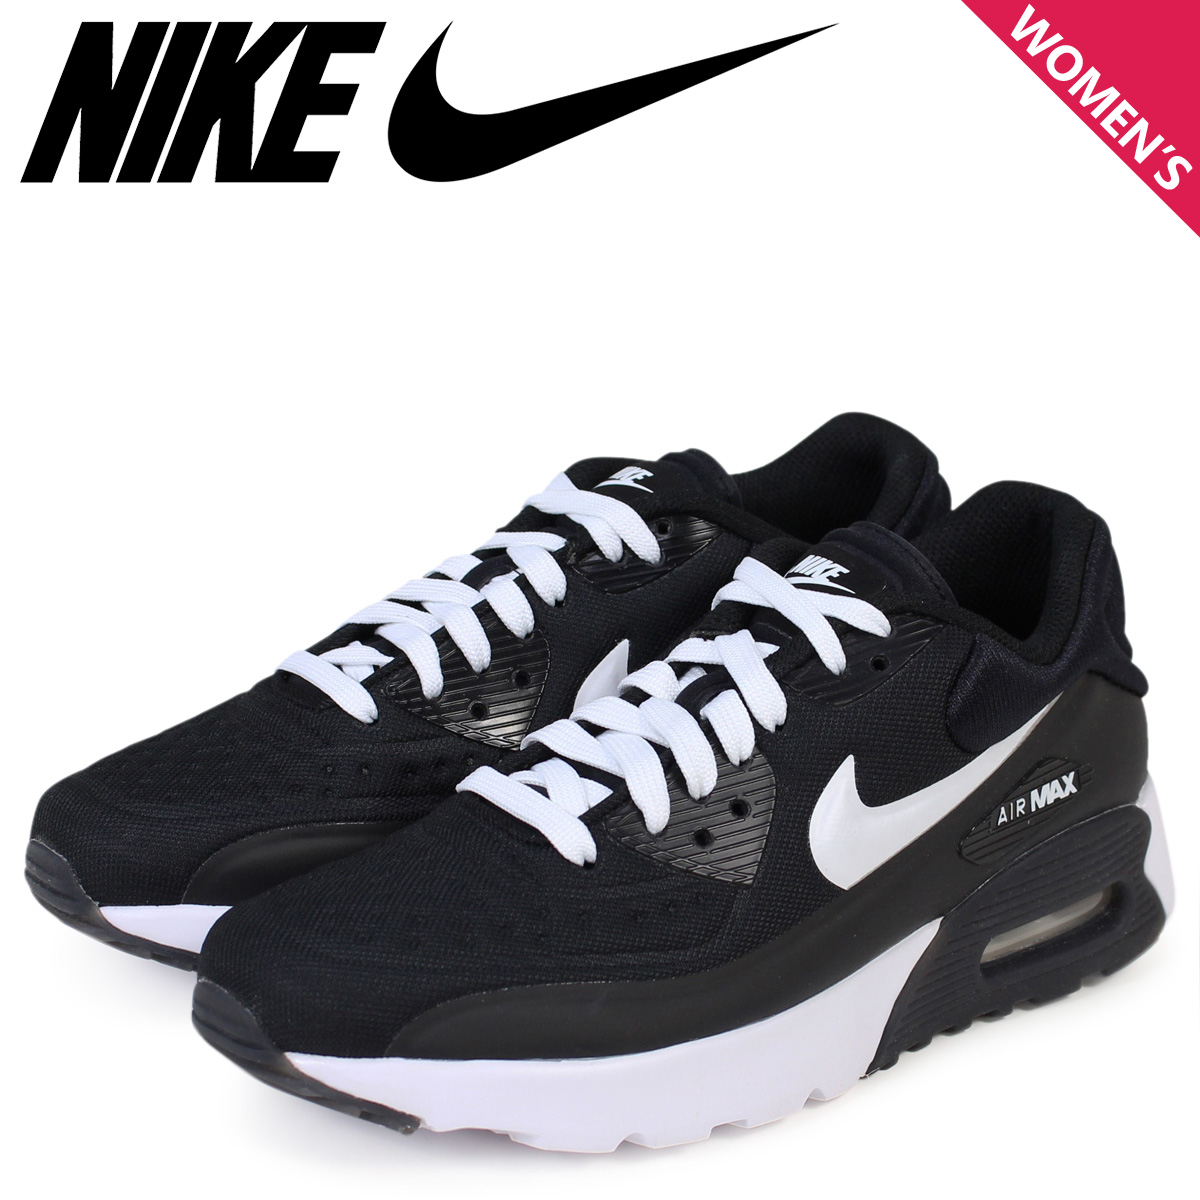 best service 4eefc fb87d Nike Air Max Womens NIKE sneakers AIR MAX 90 ULTRA SE GS Air Max 844599-001  black shoe [11 / 26 new in stock]